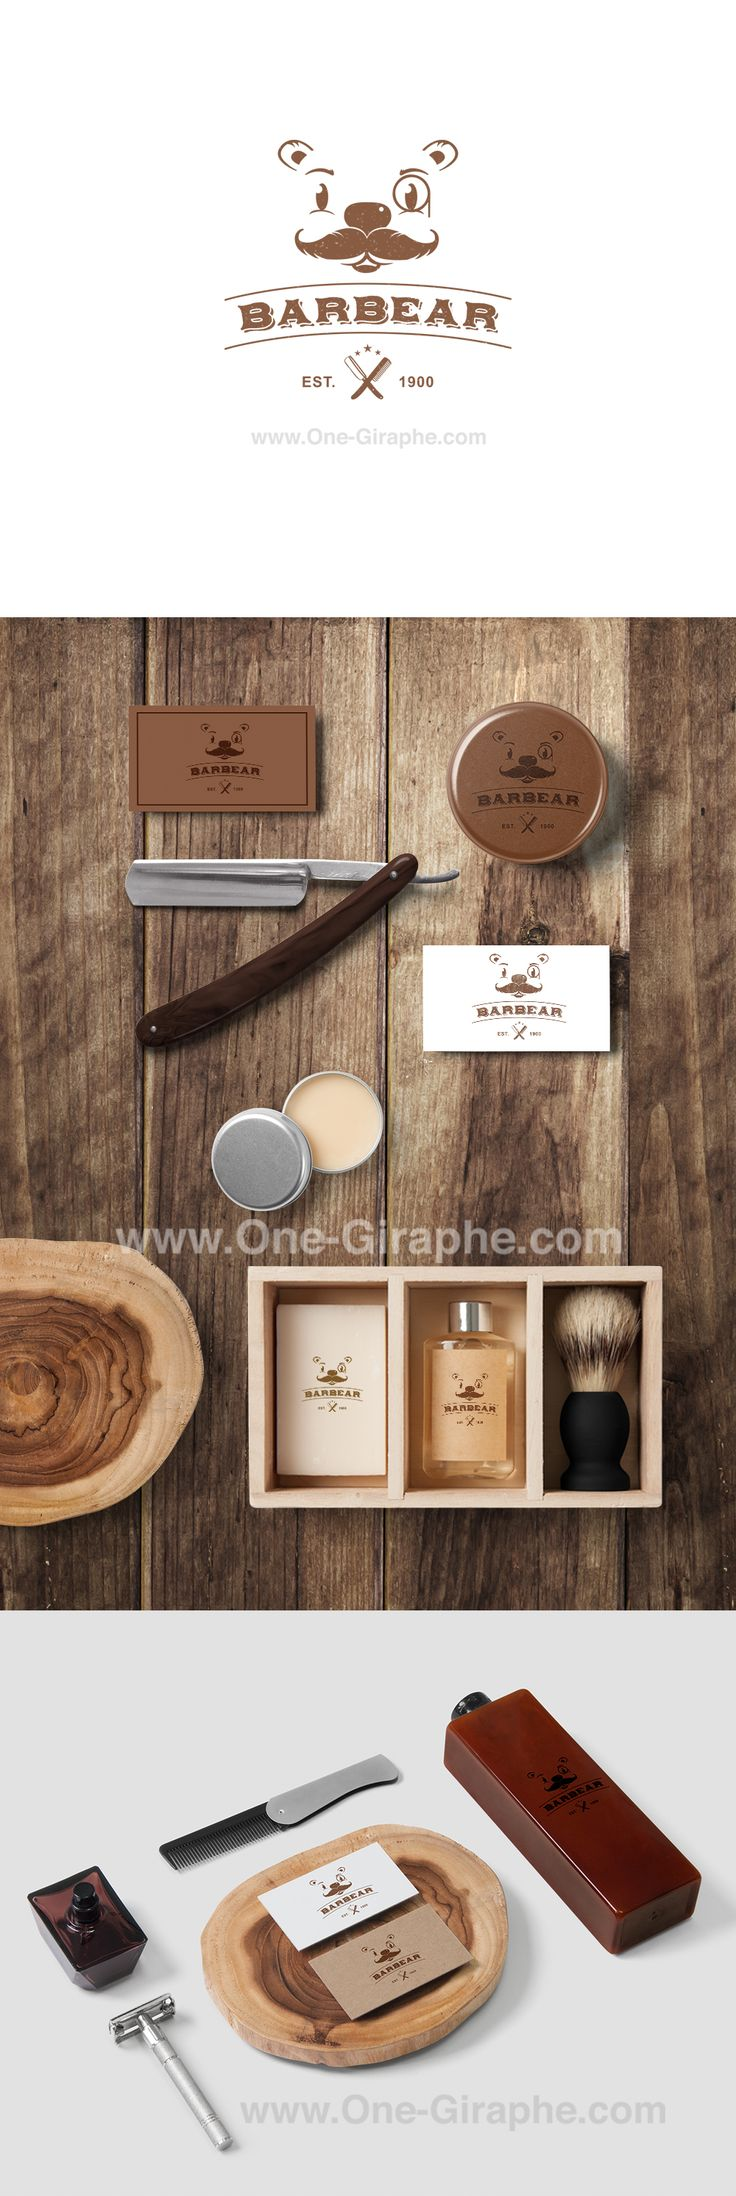 www.One-Giraphe.com #barbear #bear #barber #logo #brandidentity #design #logodesign #graphic #graphicdesign #artdirector #branding Barbear - Branding for Creative & Design for sale! - Logo ( color variations and black / white ) + business card design ( 2 sides ) as bonus. Format files: eps, pdf, png, jpg or any other at request. Order now at: onegiraphe@gmail.com #cosmetic #cosmetics #packaging #thedieline #bear #teddy #wood